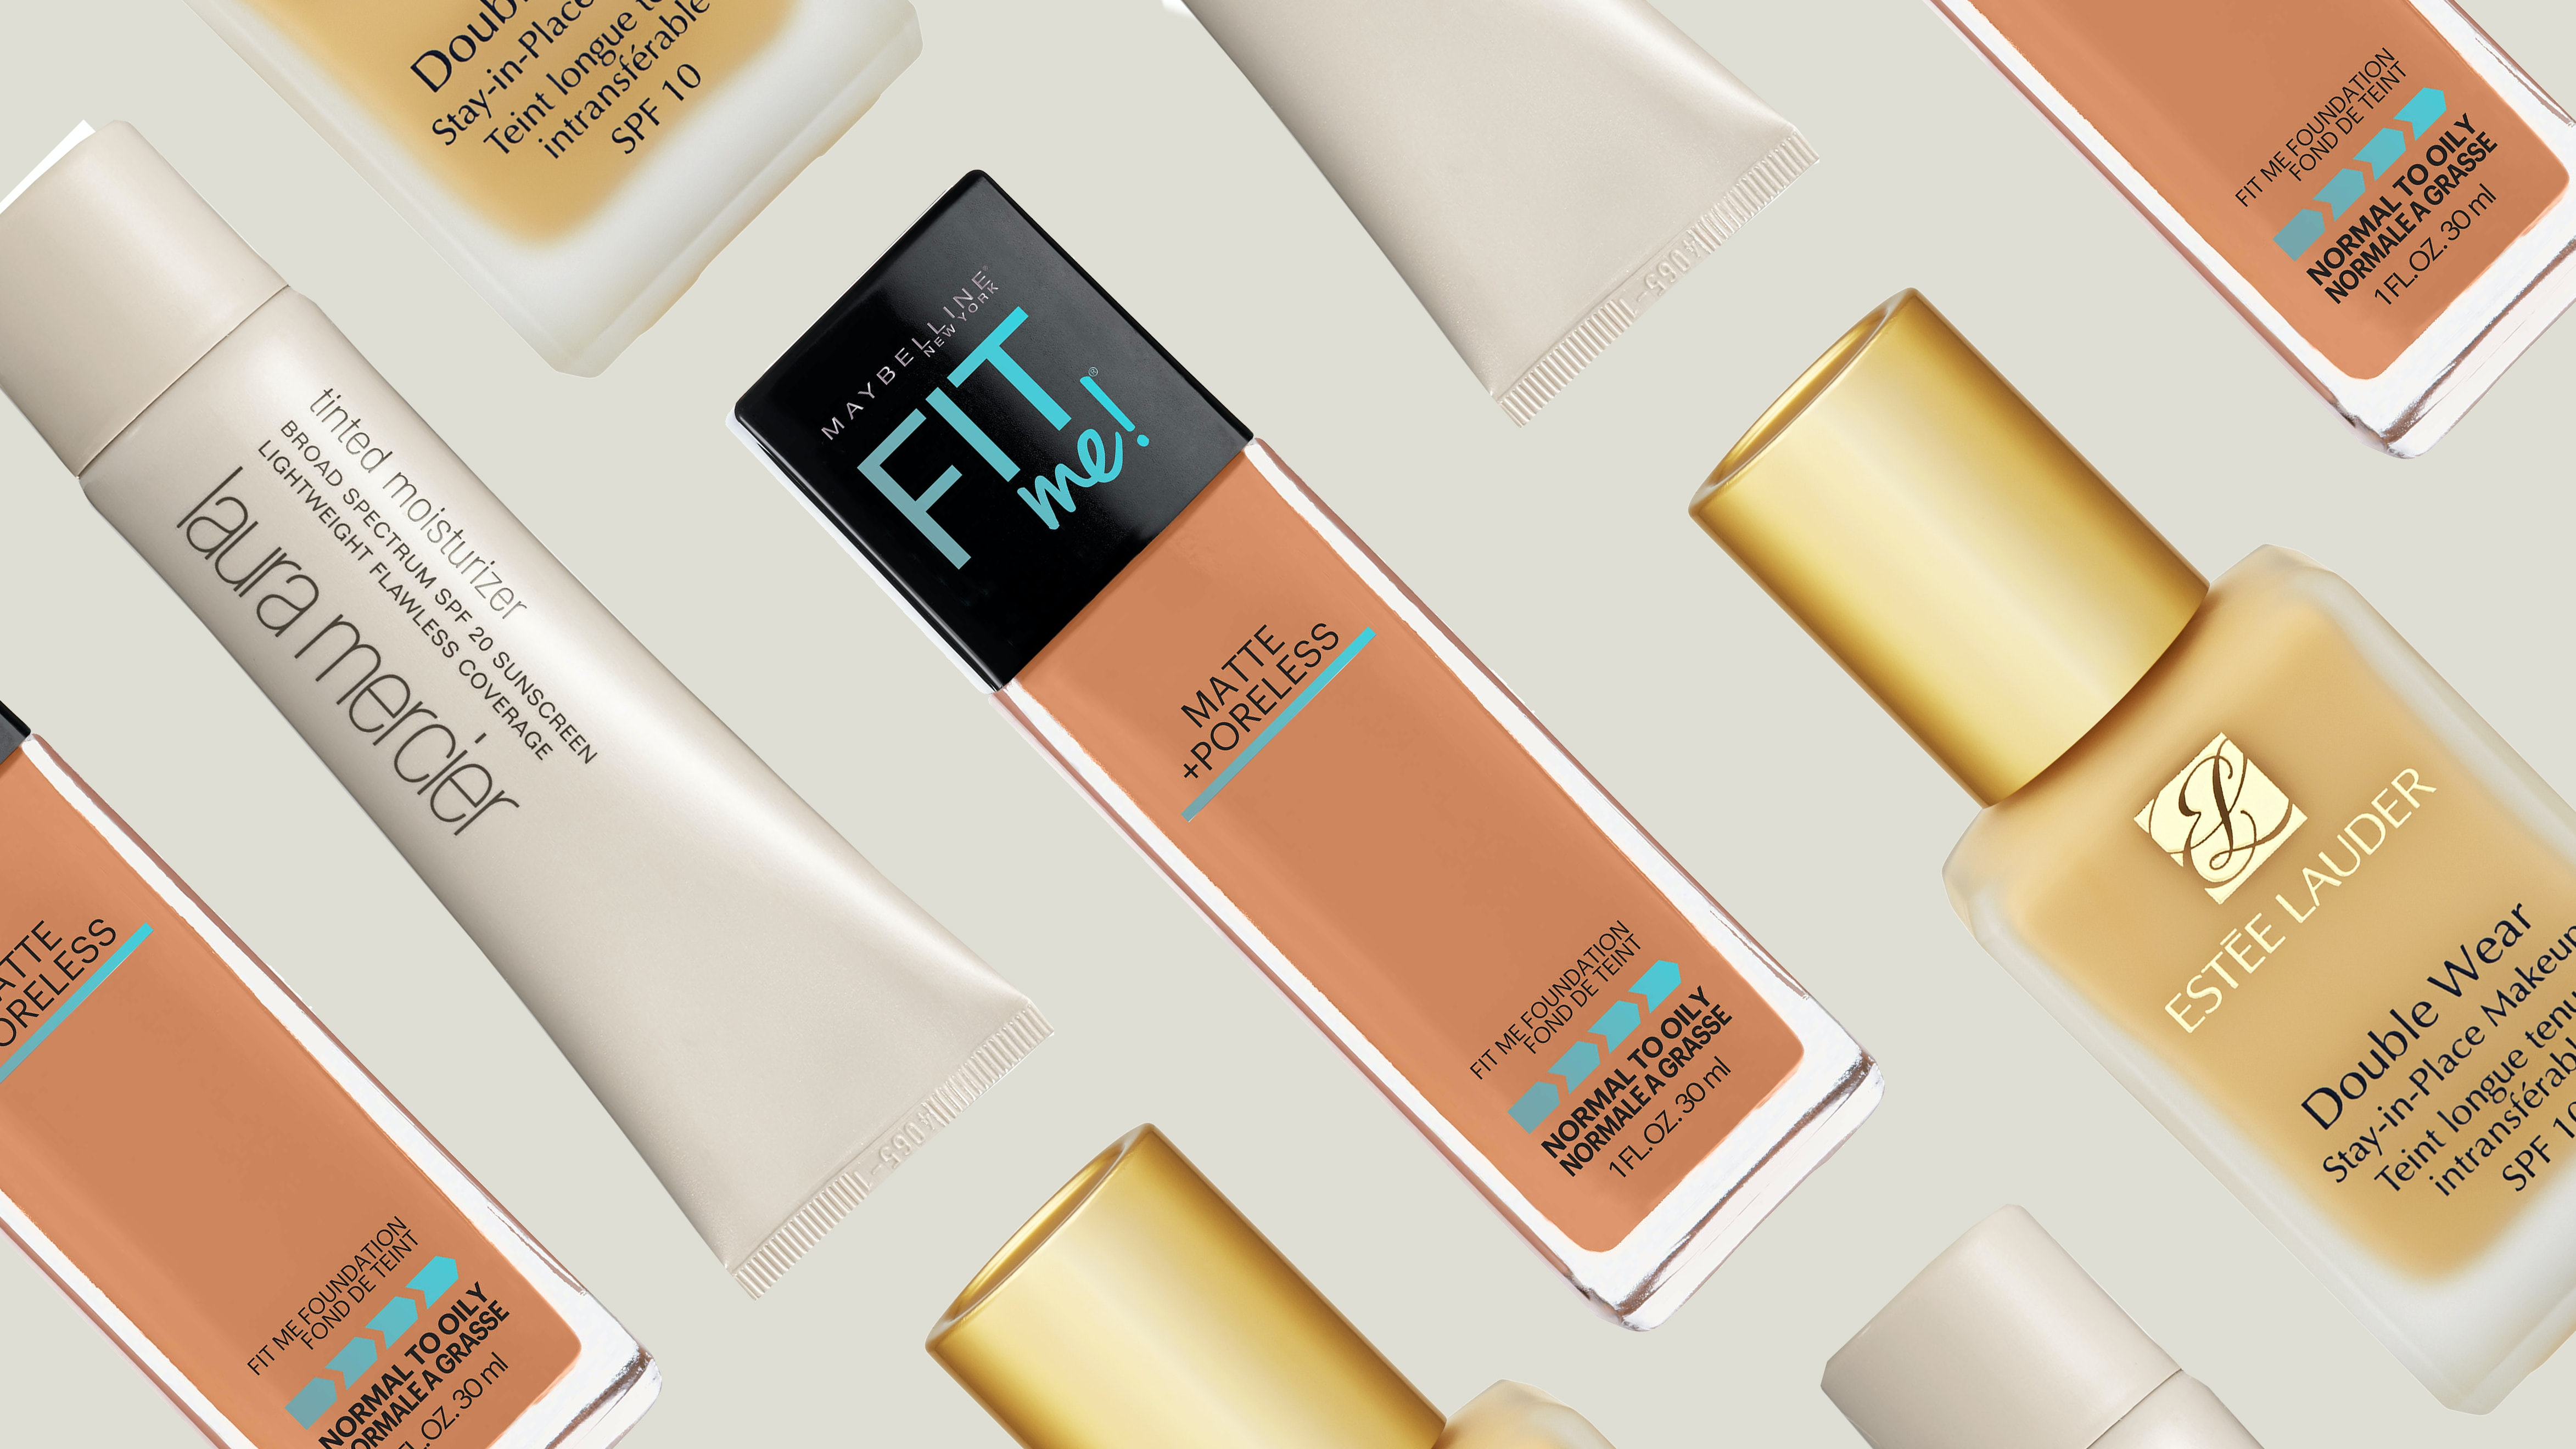 The 6 Best Foundations You Can Buy, According to Celebrity Makeup Artists